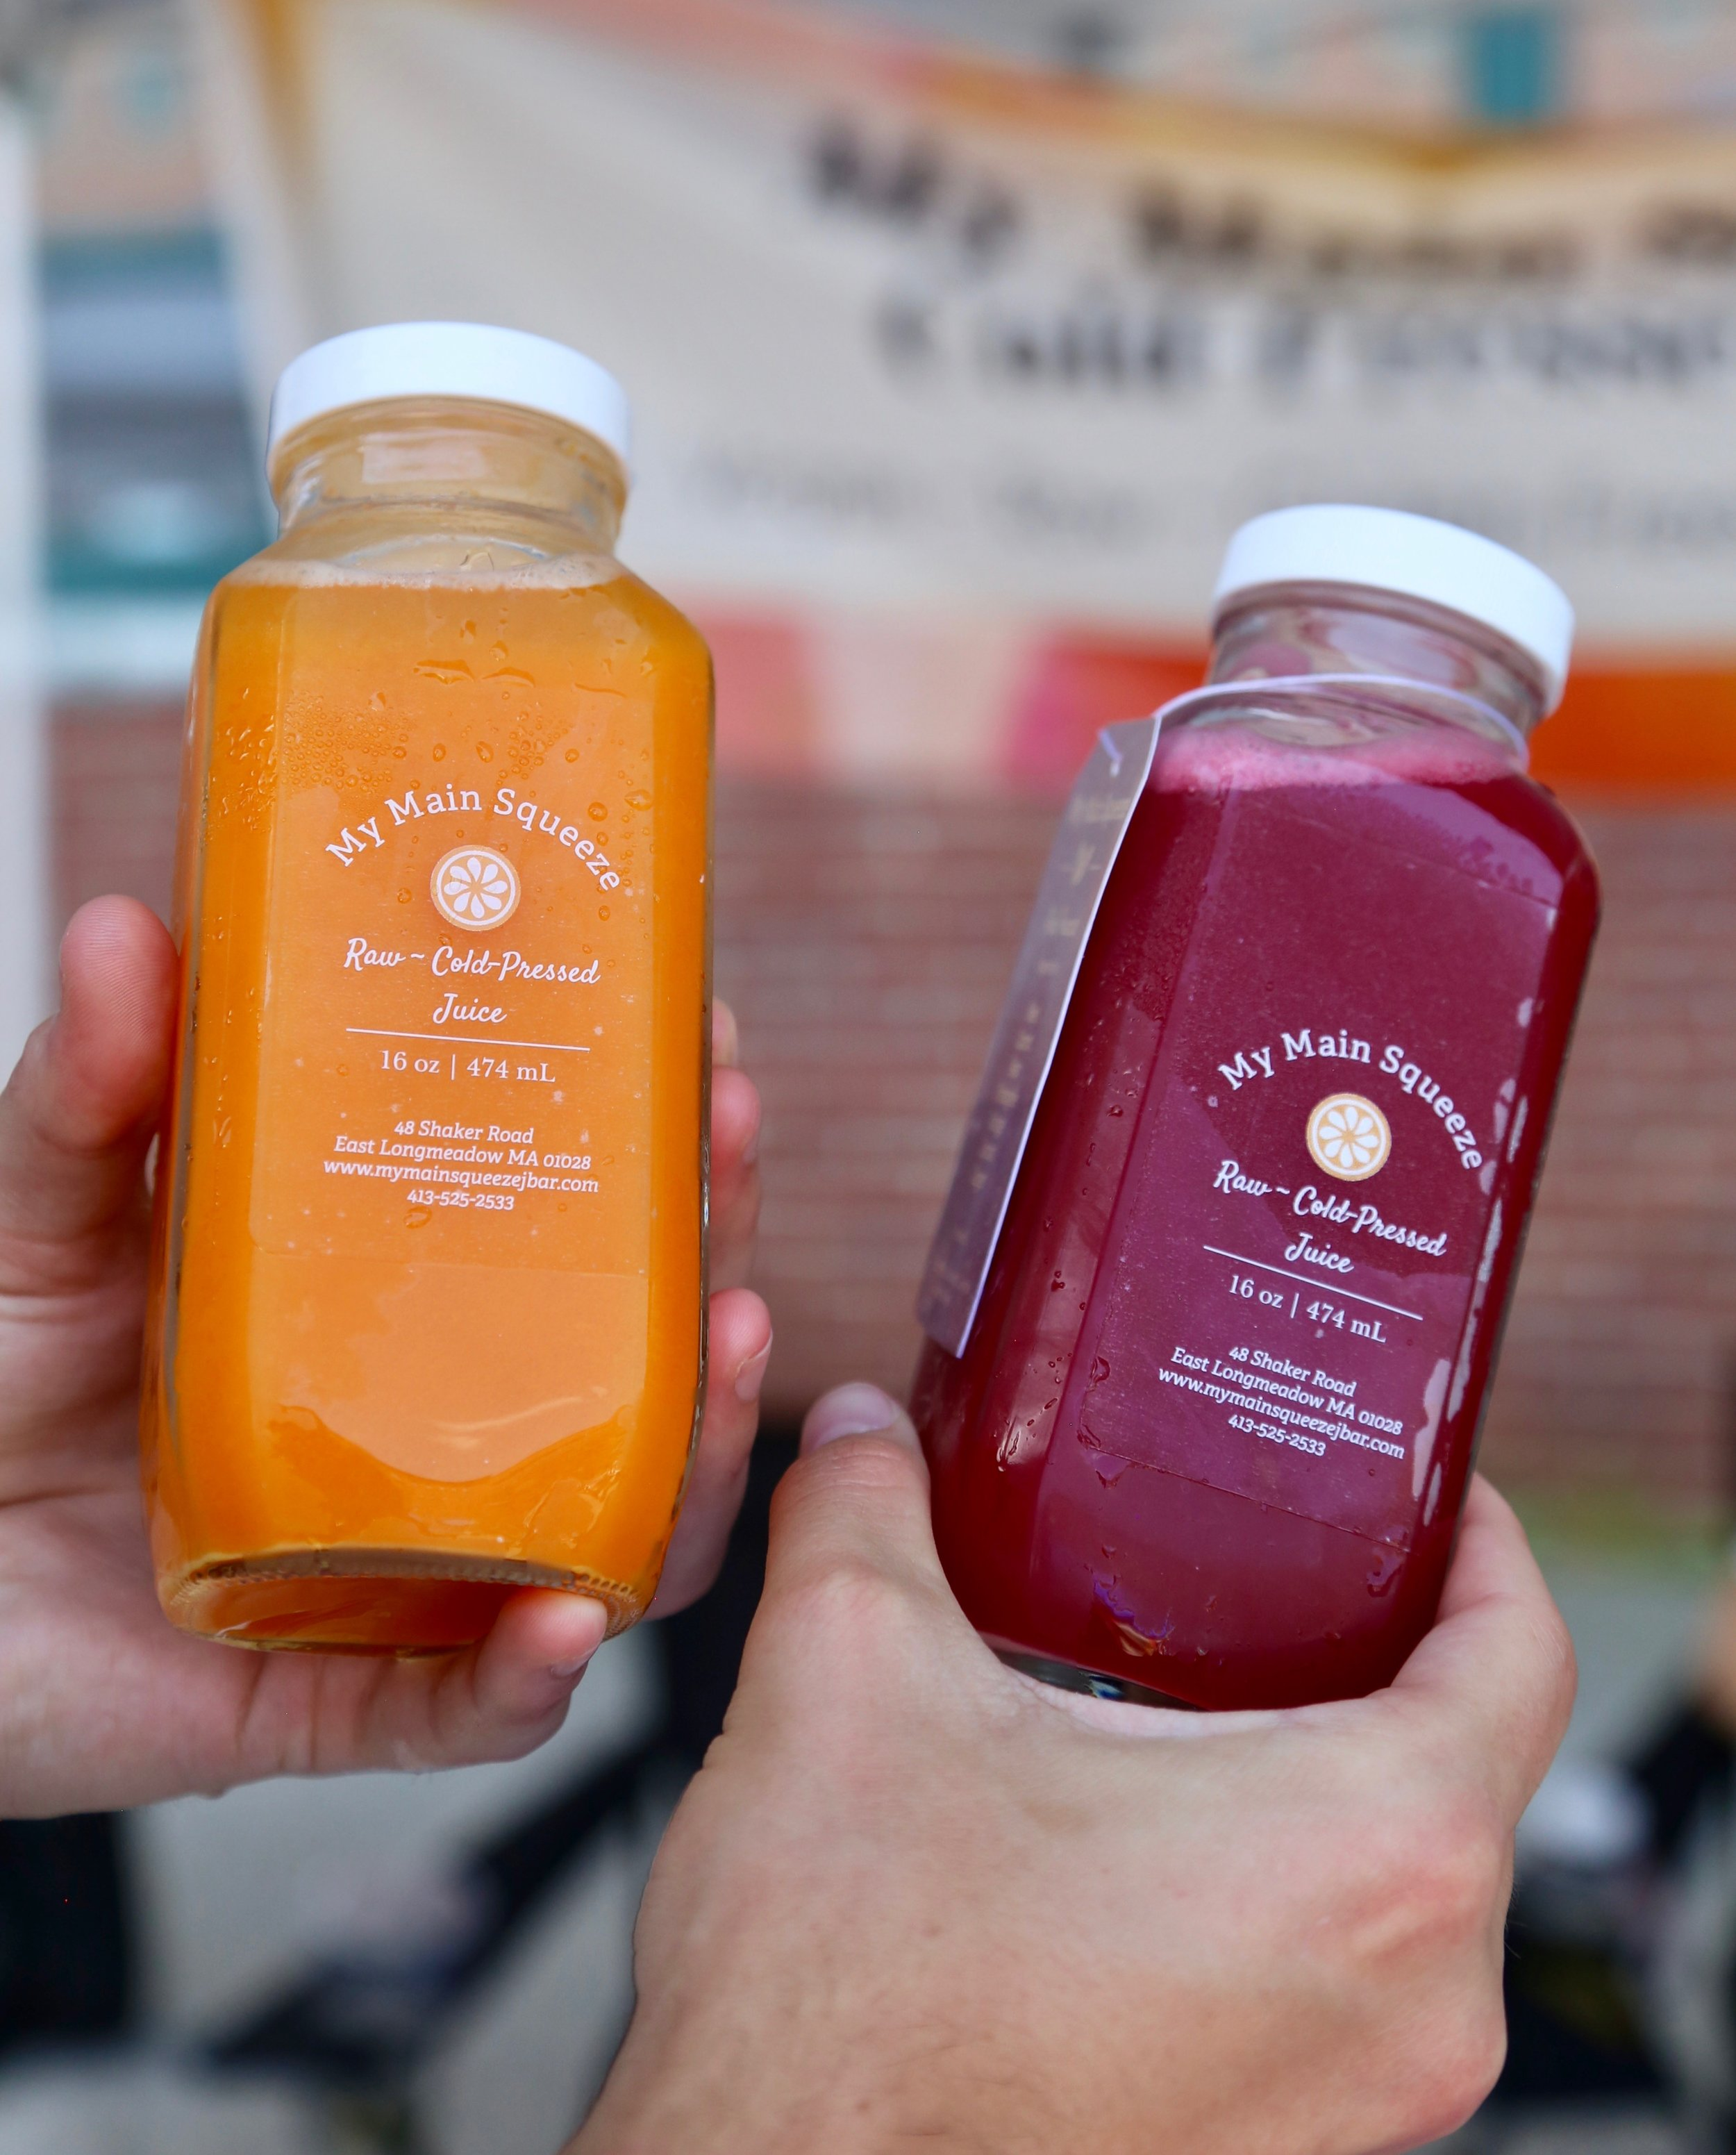 My Main Squeeze - Is there anything better than fresh pressed juice. All natural. Made fresh. Choose from a variety of delicious flavors!